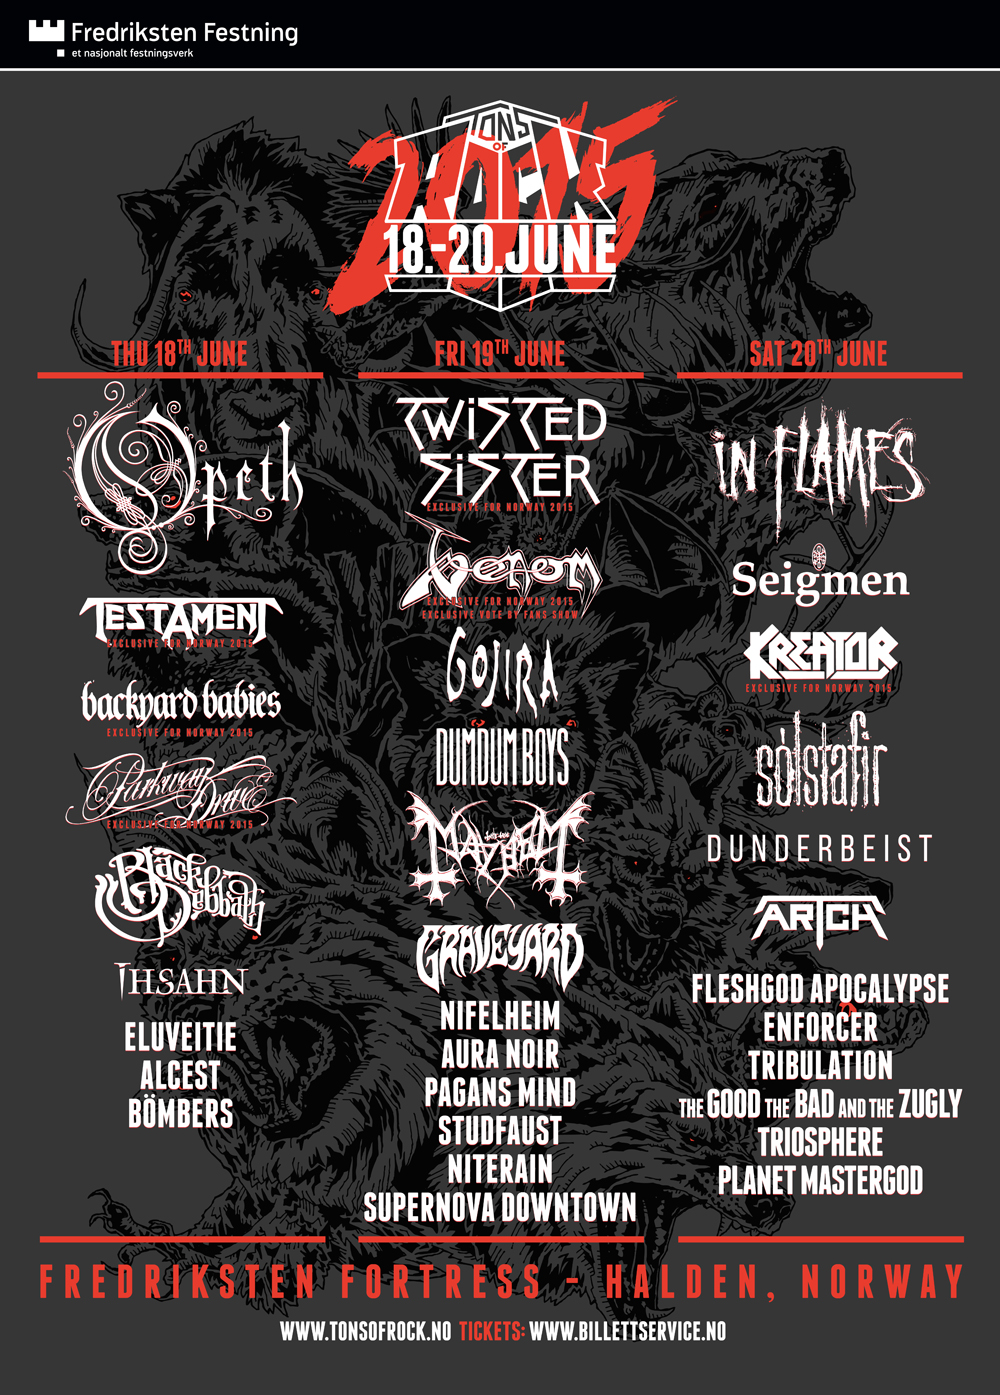 tons of rock webposter 2015-2